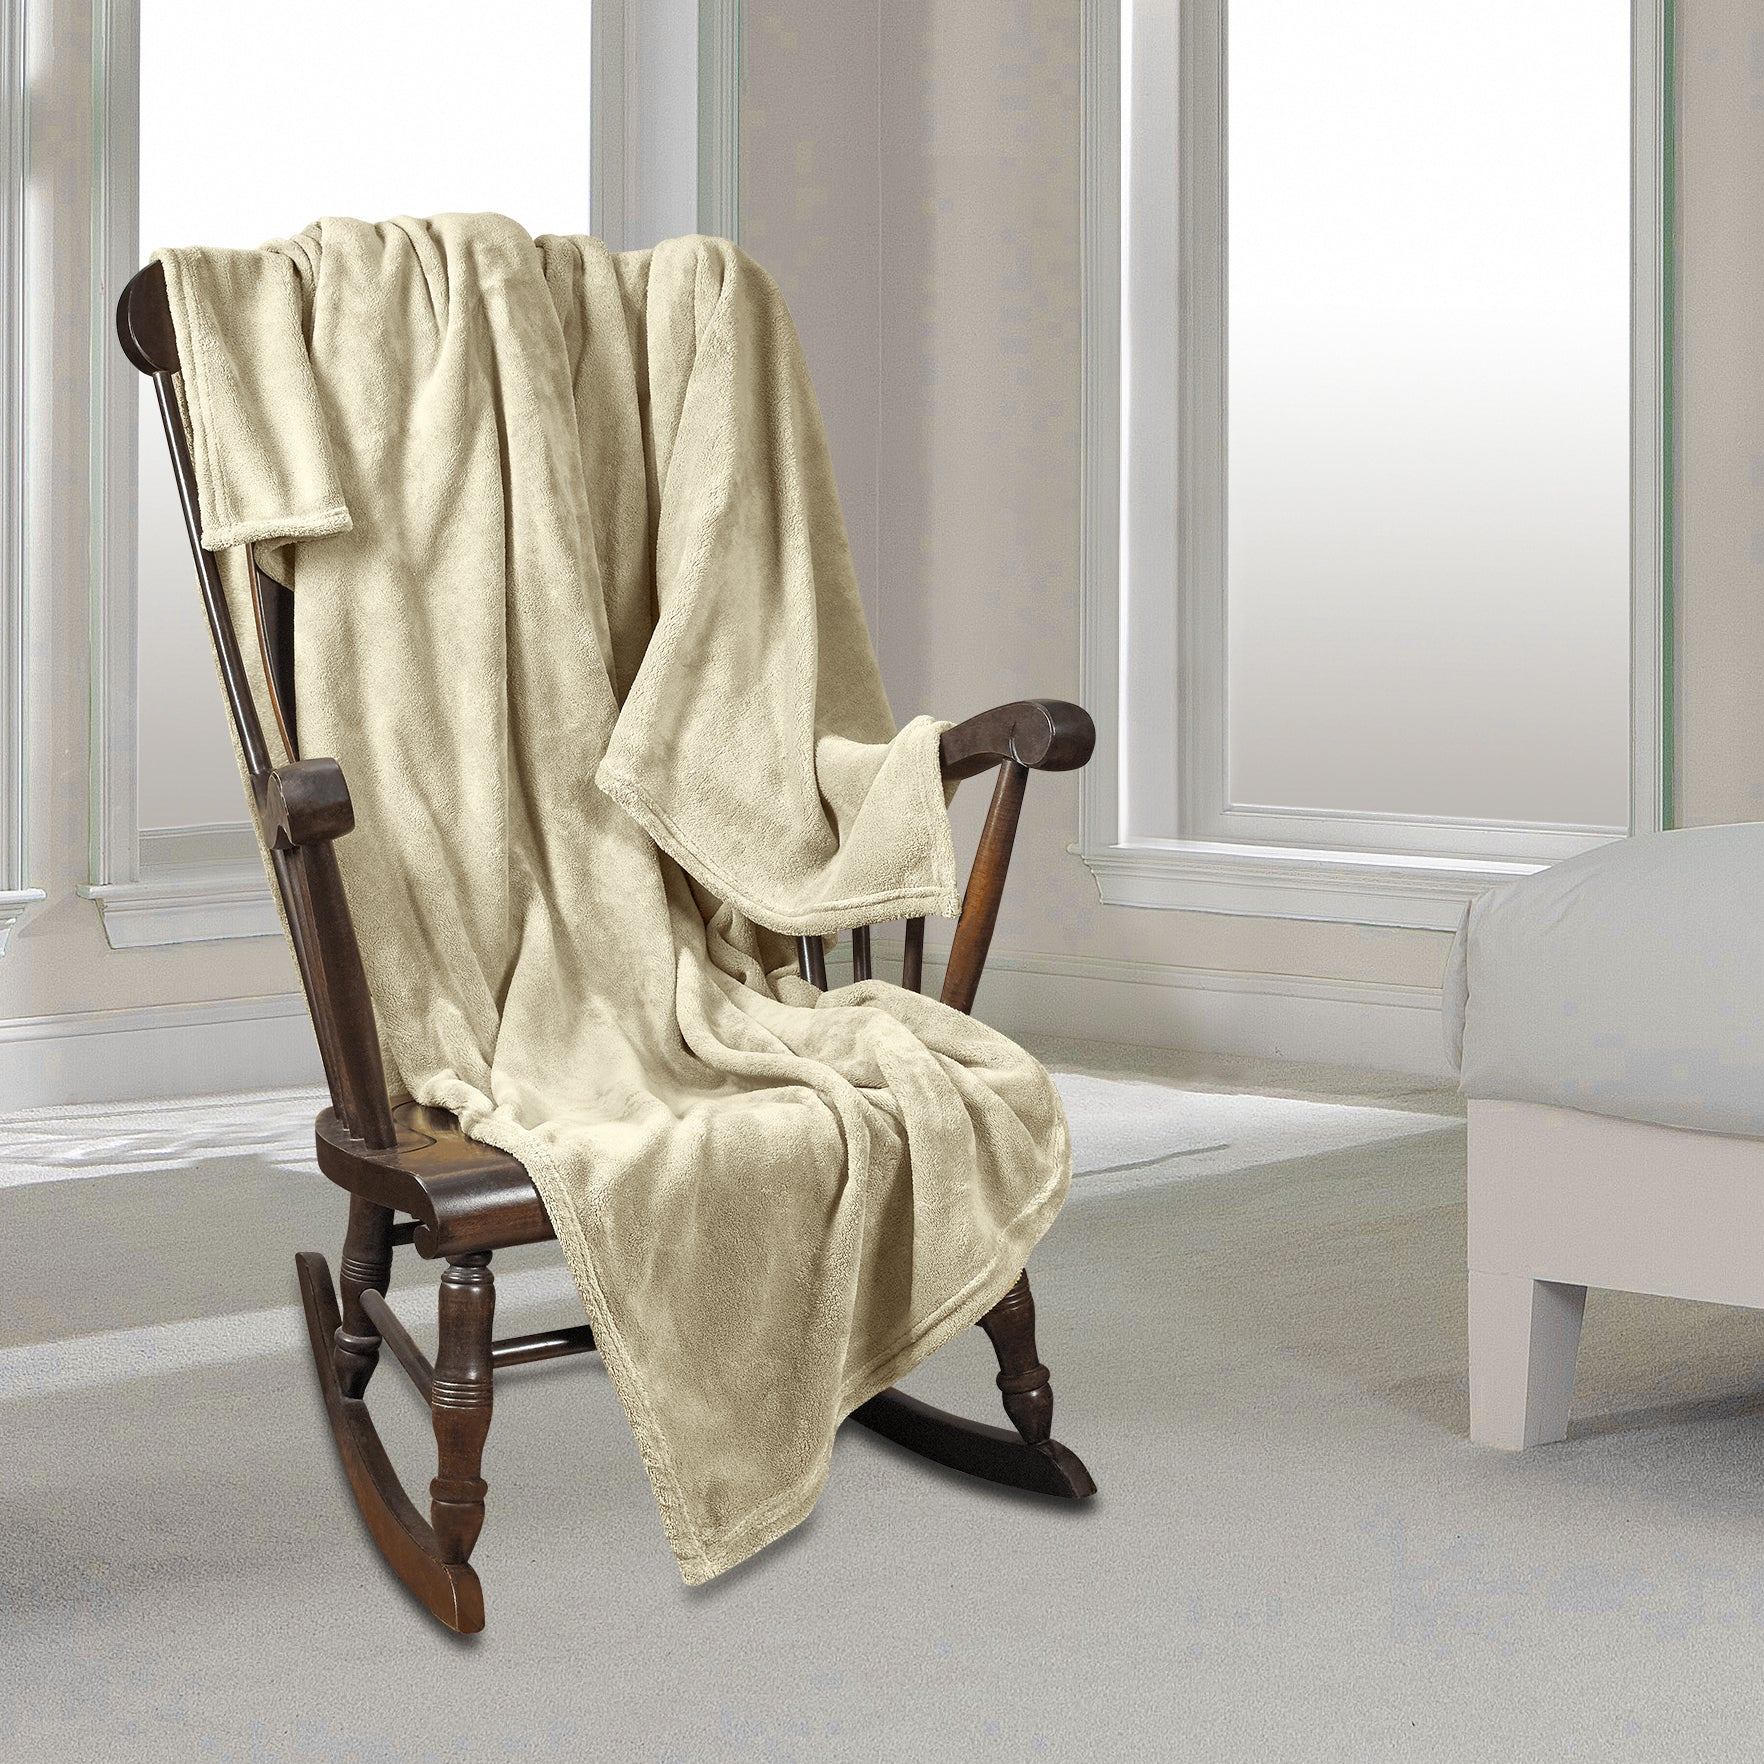 Clara Clark Micro Polar-Fleece Blanket, Cream